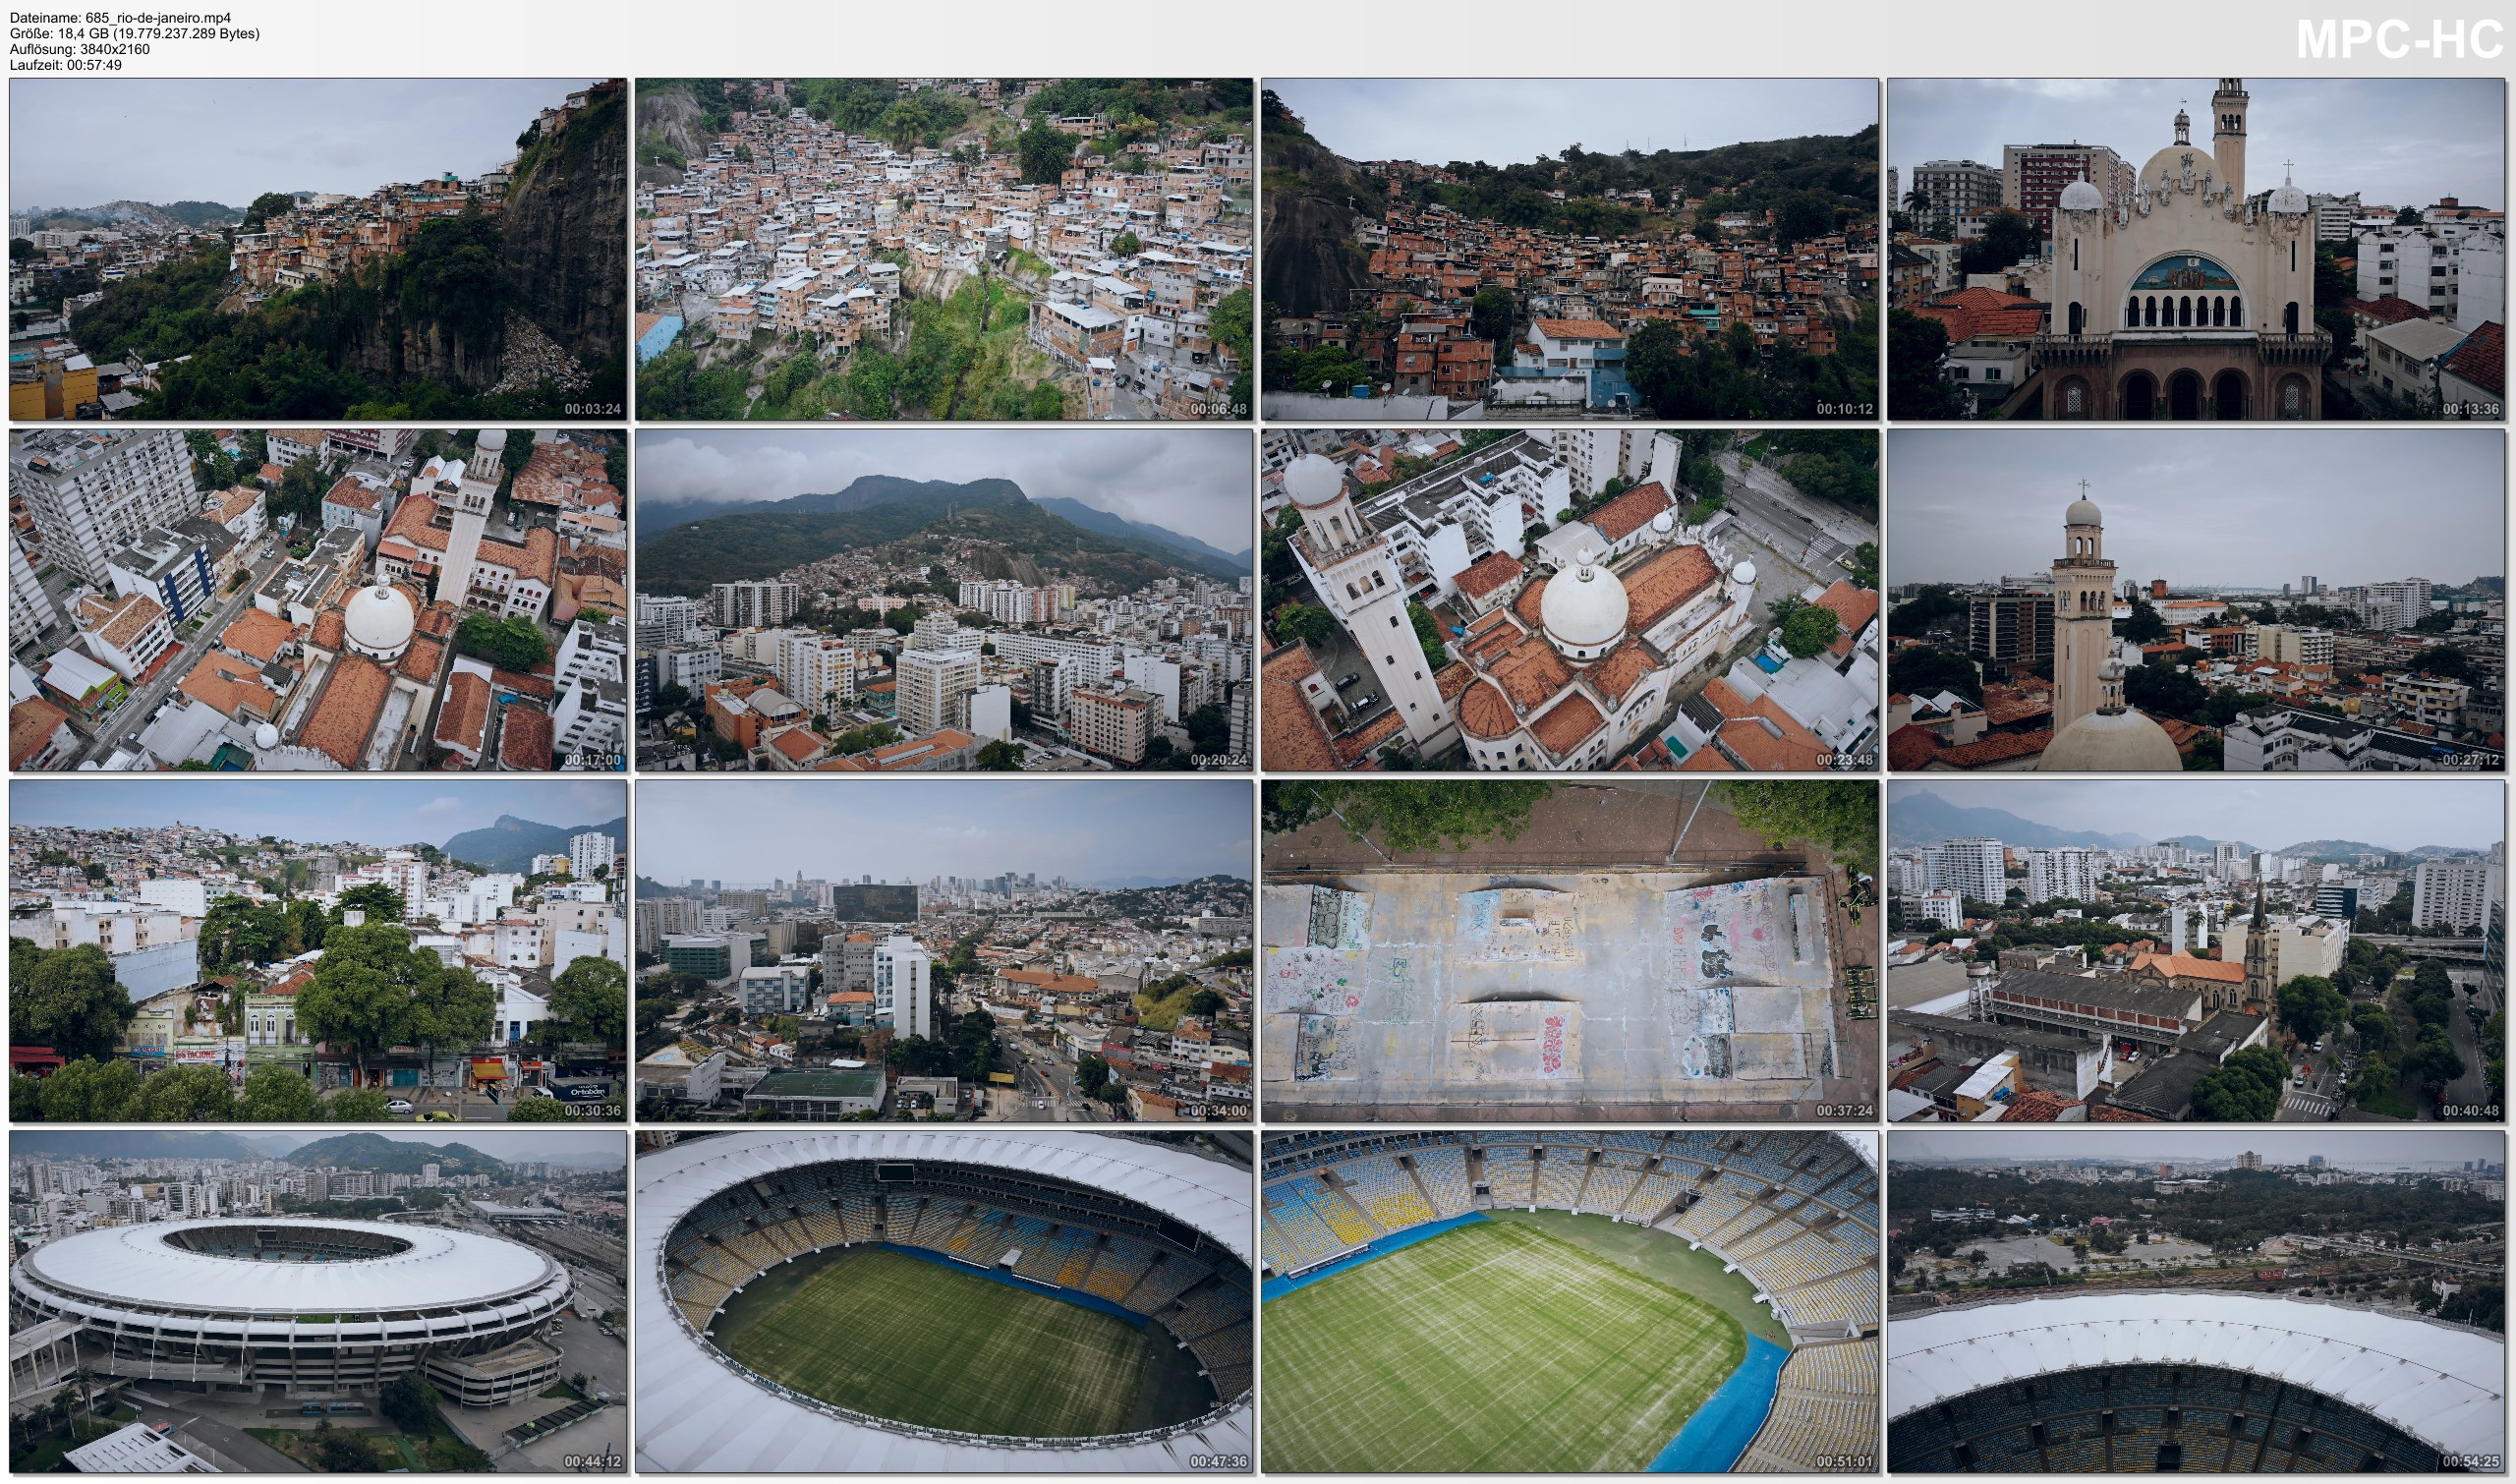 Drone Pictures from Video 【4K】Lockdown of Rio de Janeiro »1 Hour   BRAZIL   June 4, 2020   Cinematic Wolf Aerial™ Drone Film